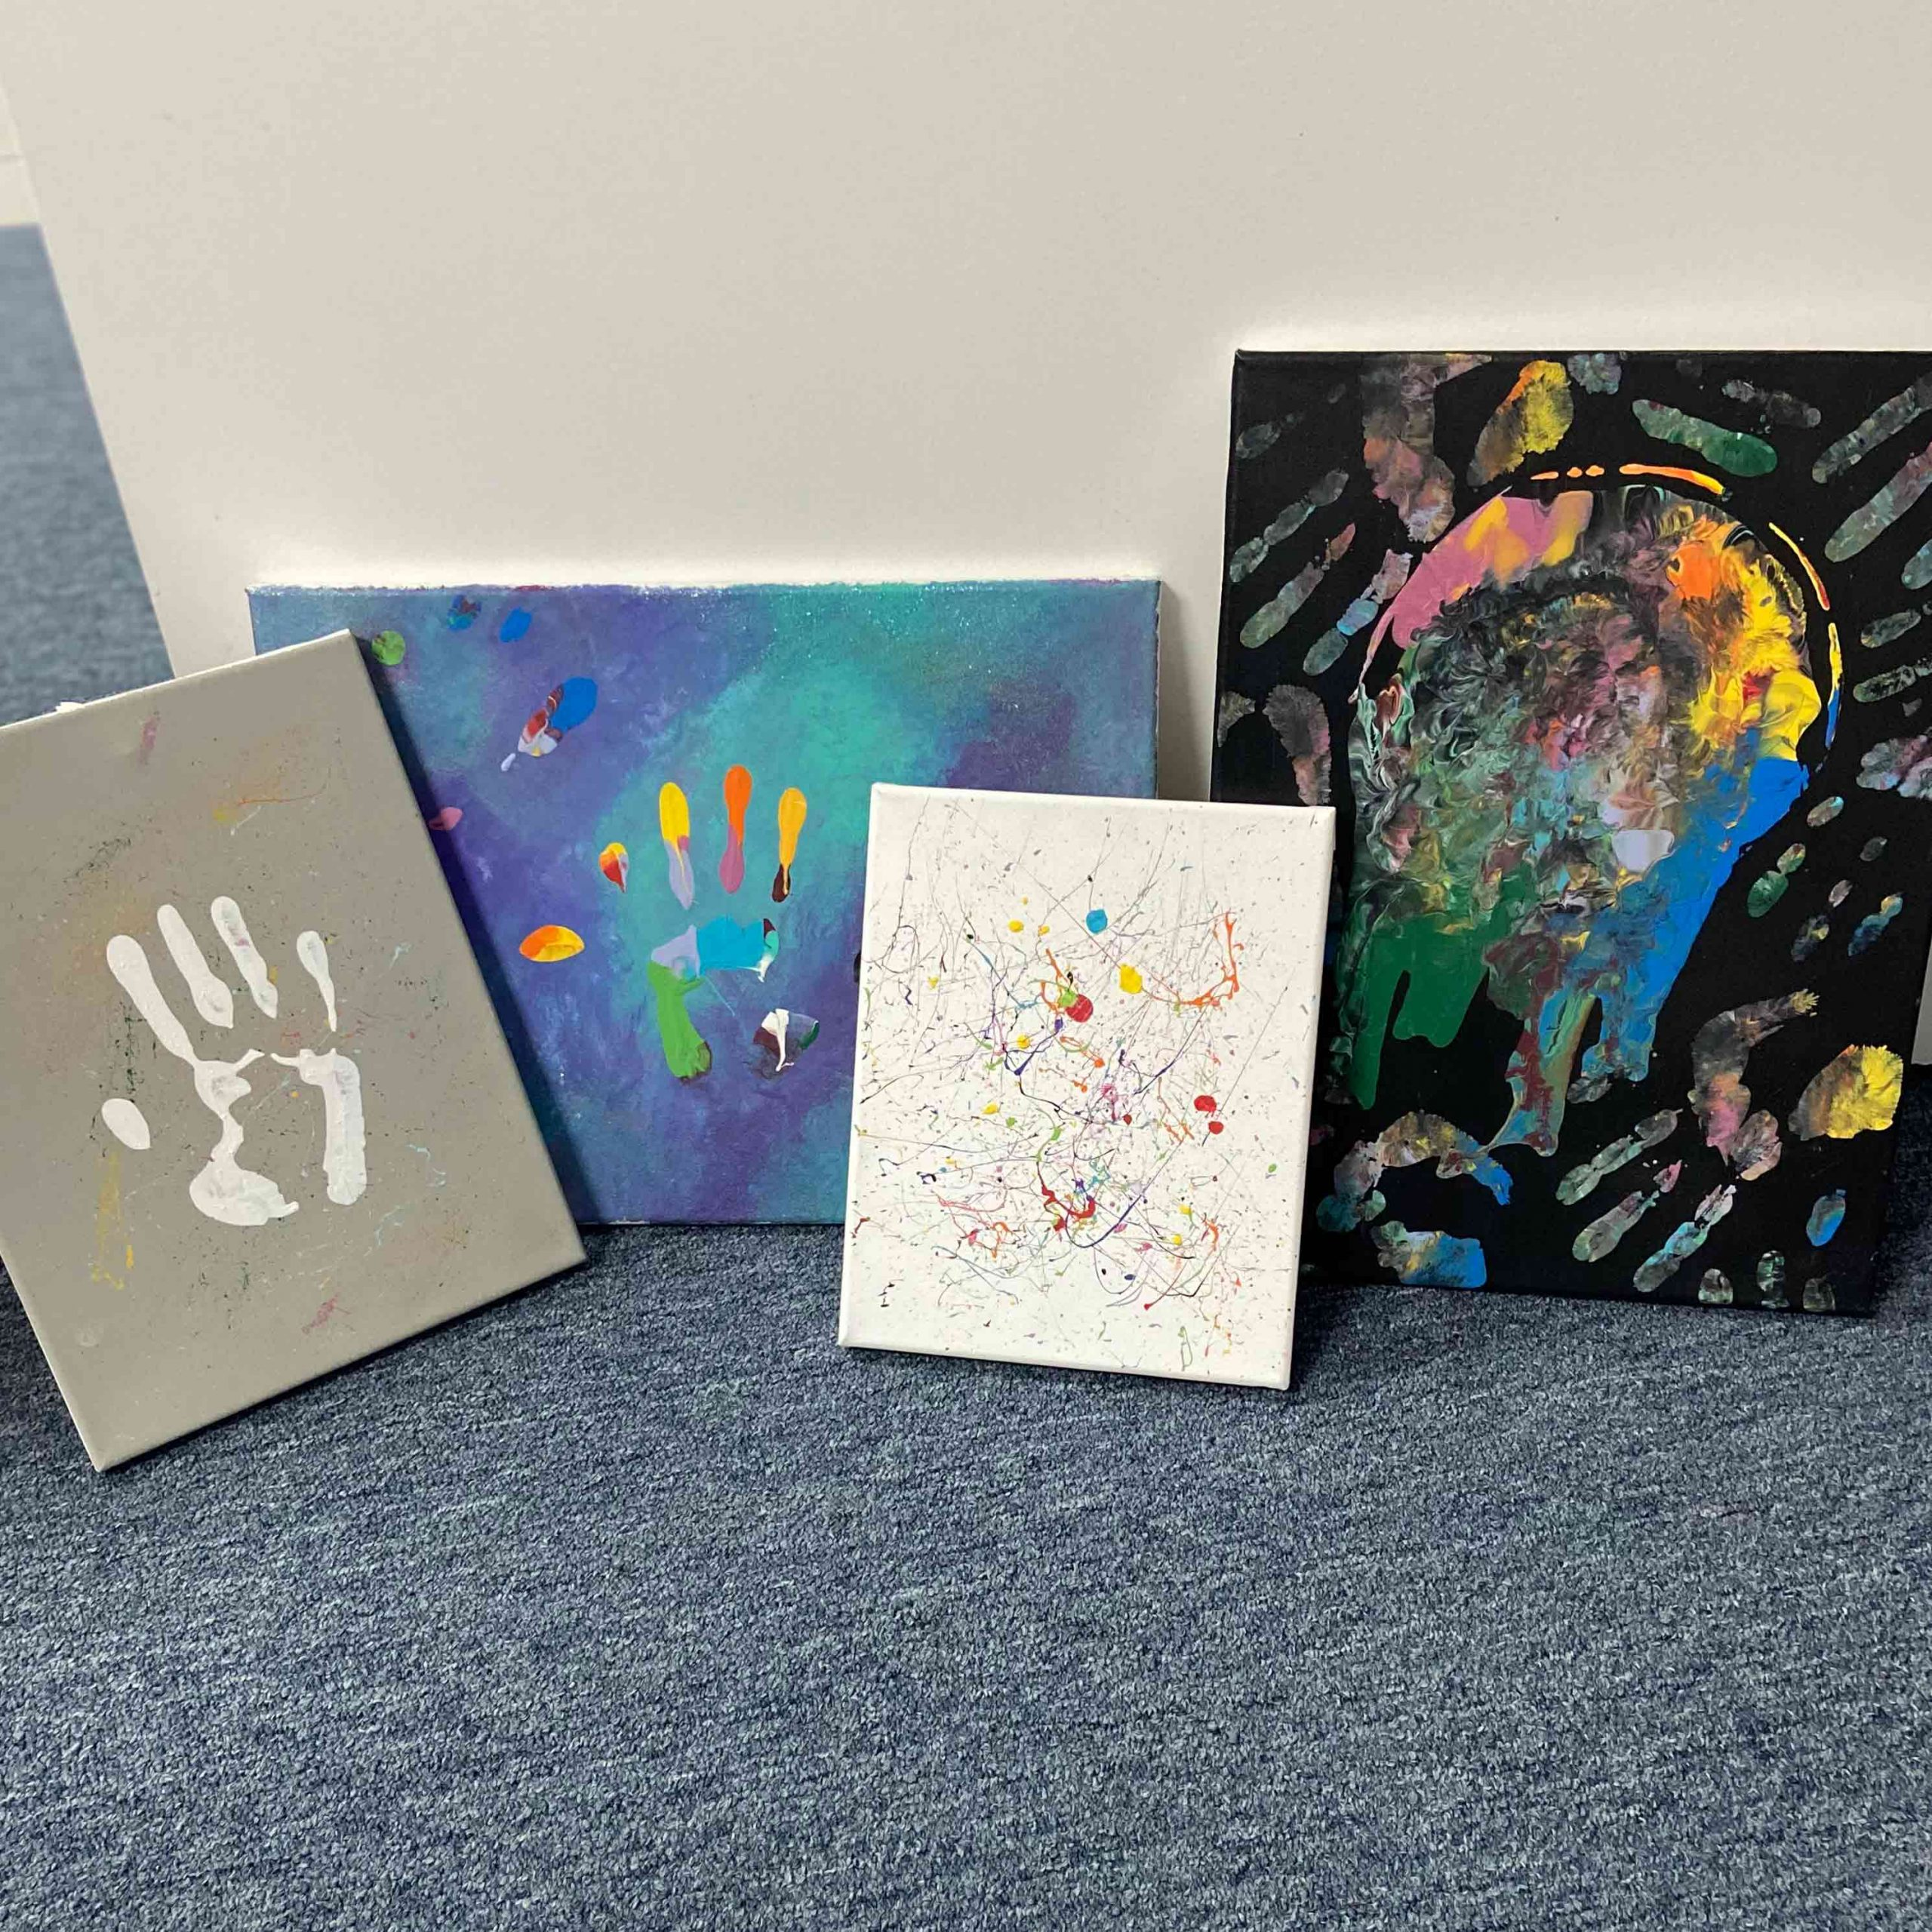 canvas on the floor with colorful paintings of hands and abstract pages